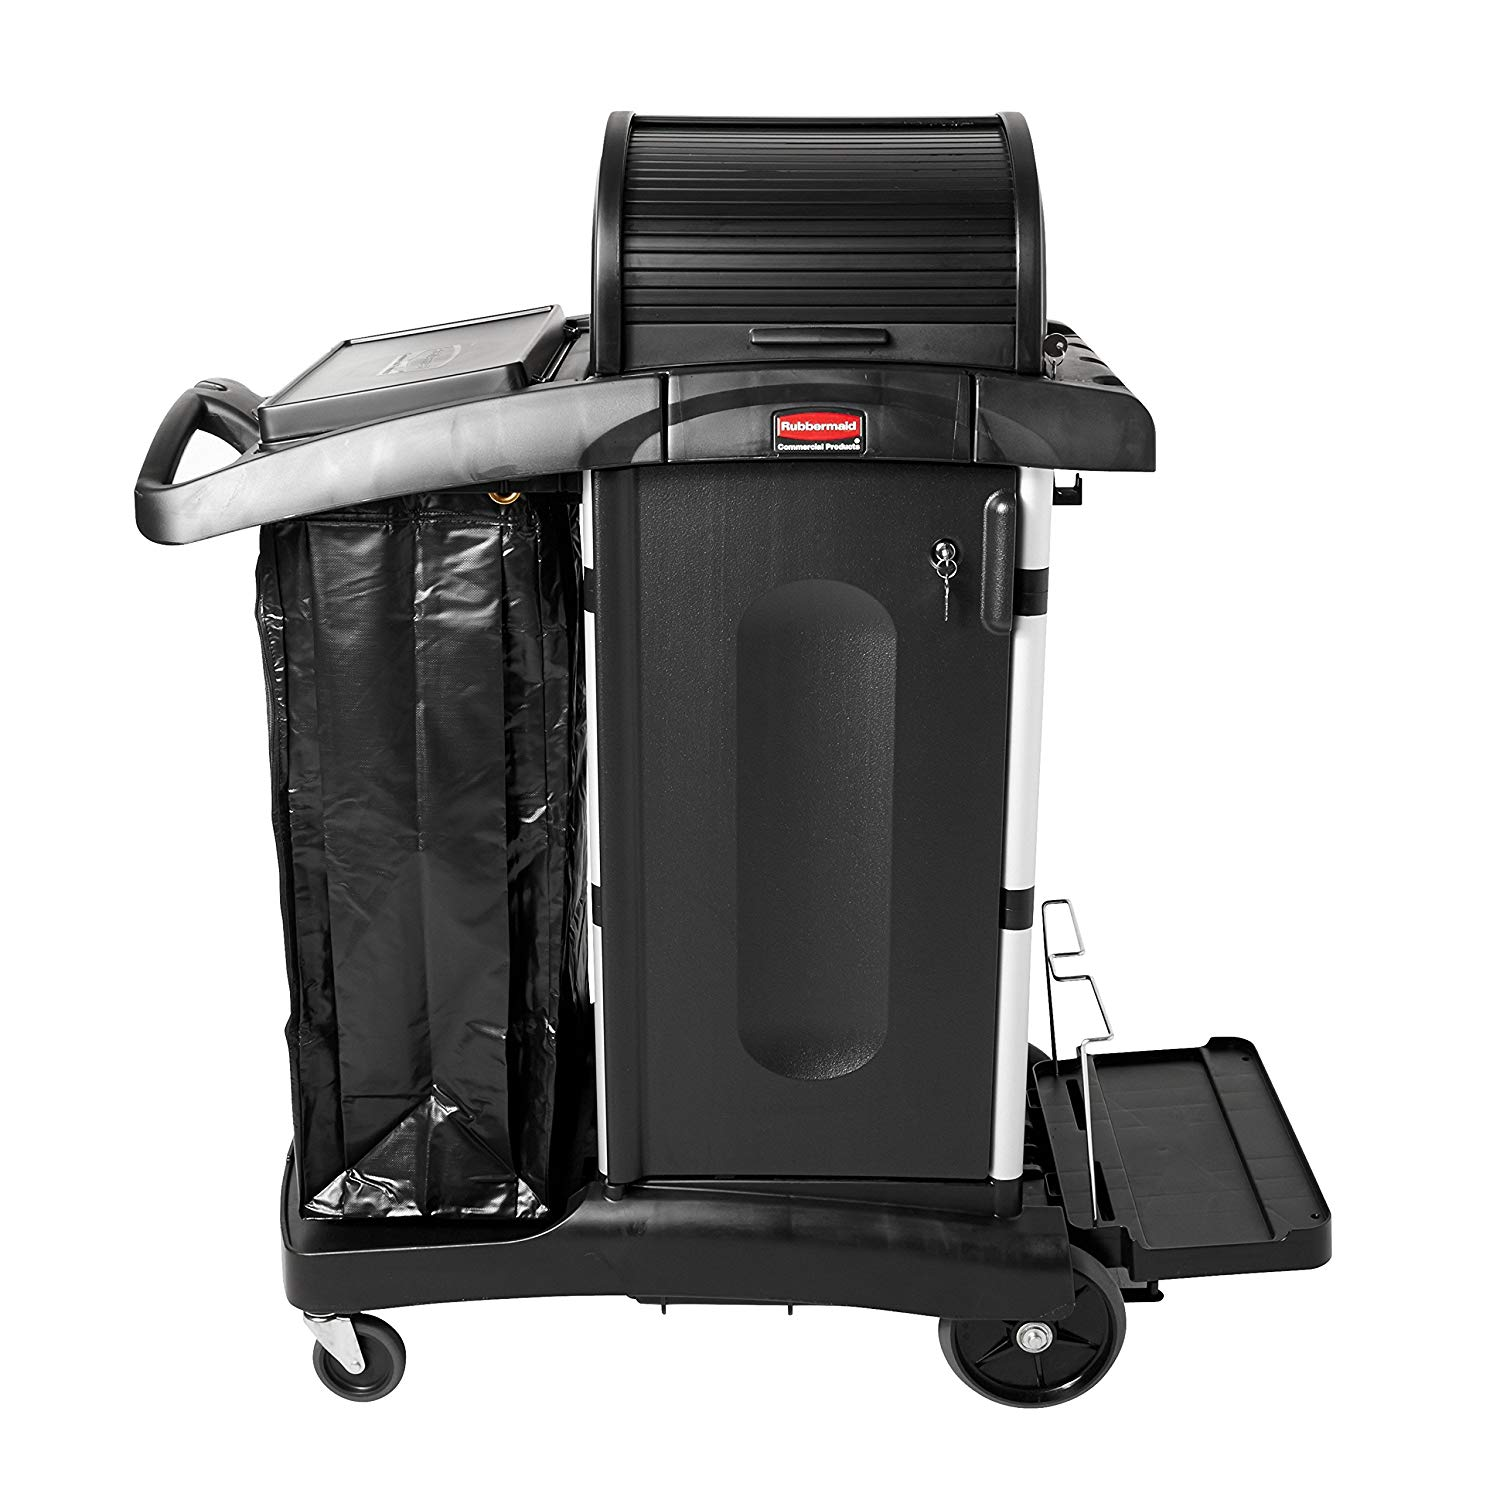 Executive Janitorial Cleaning Cart w/ Doors